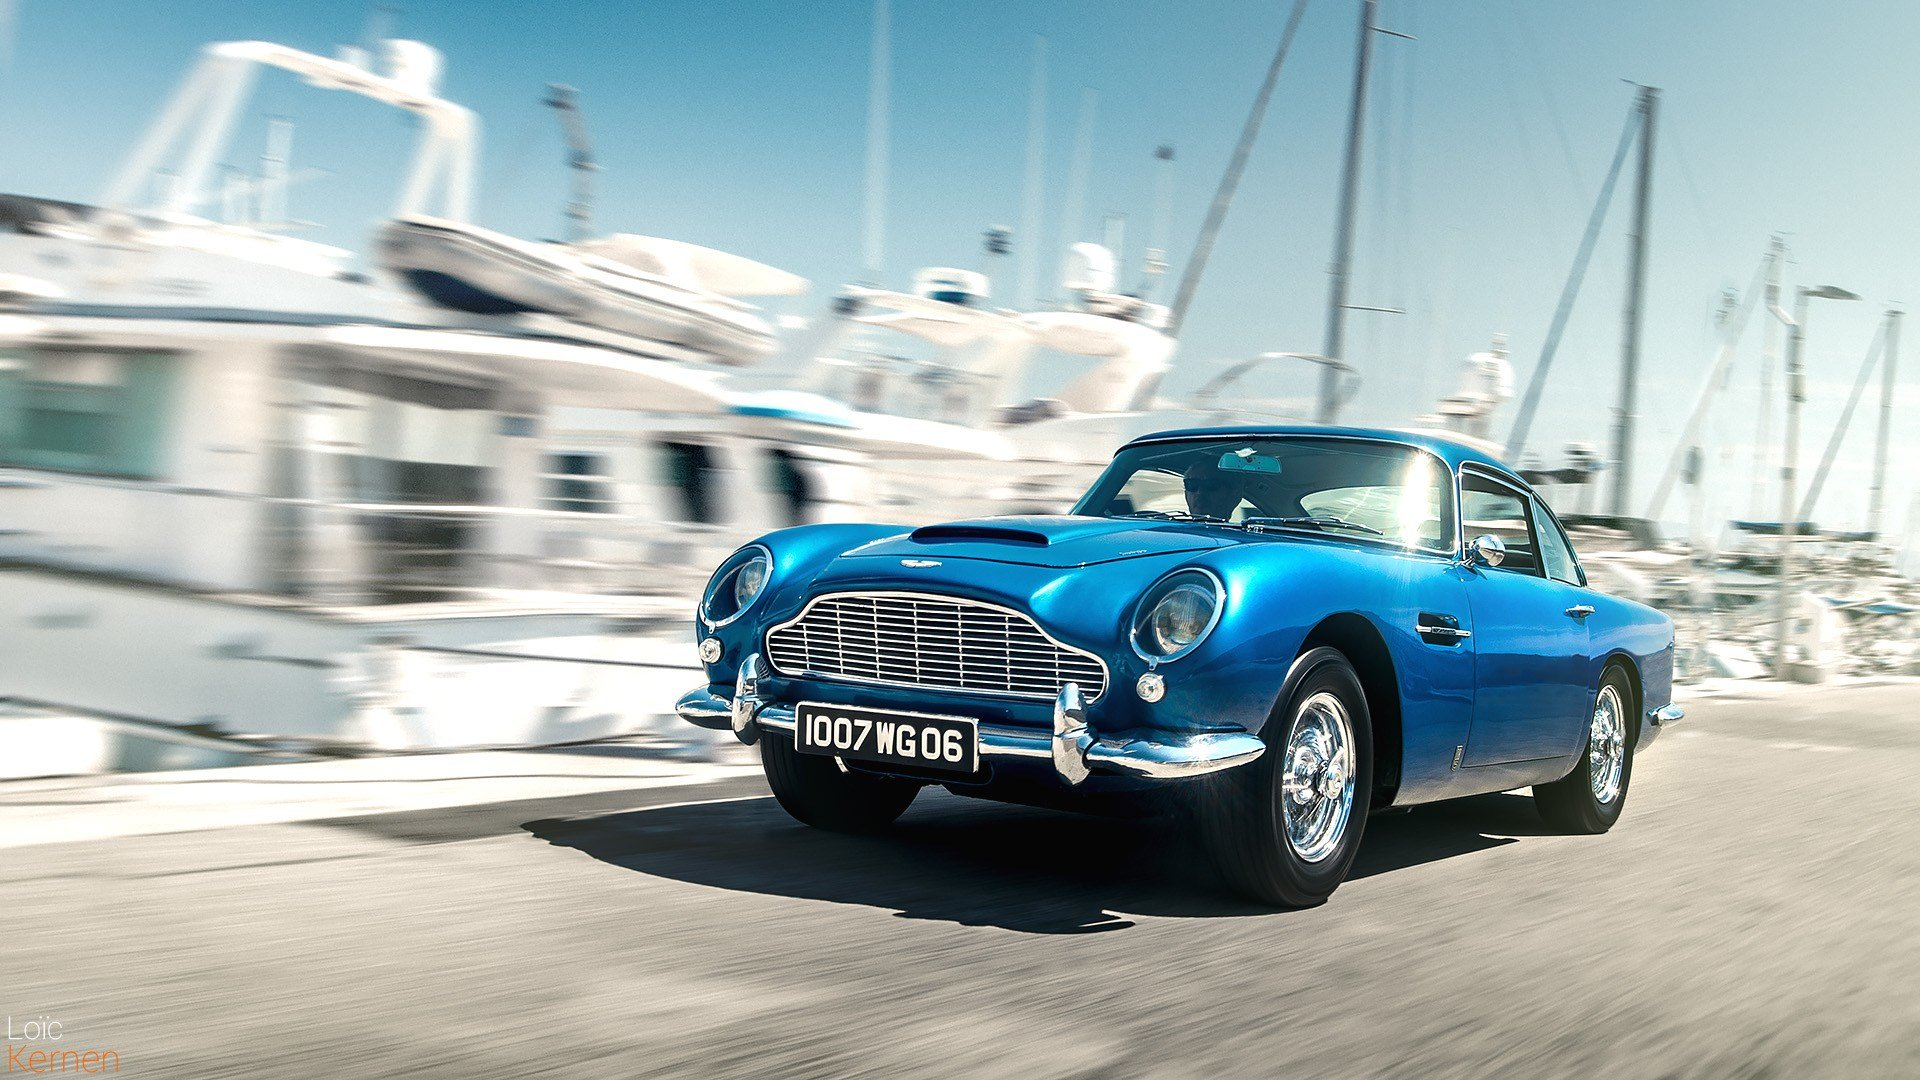 Latest Aston Martin Db5 And The Not So Fake Blur Car Photography Free Download